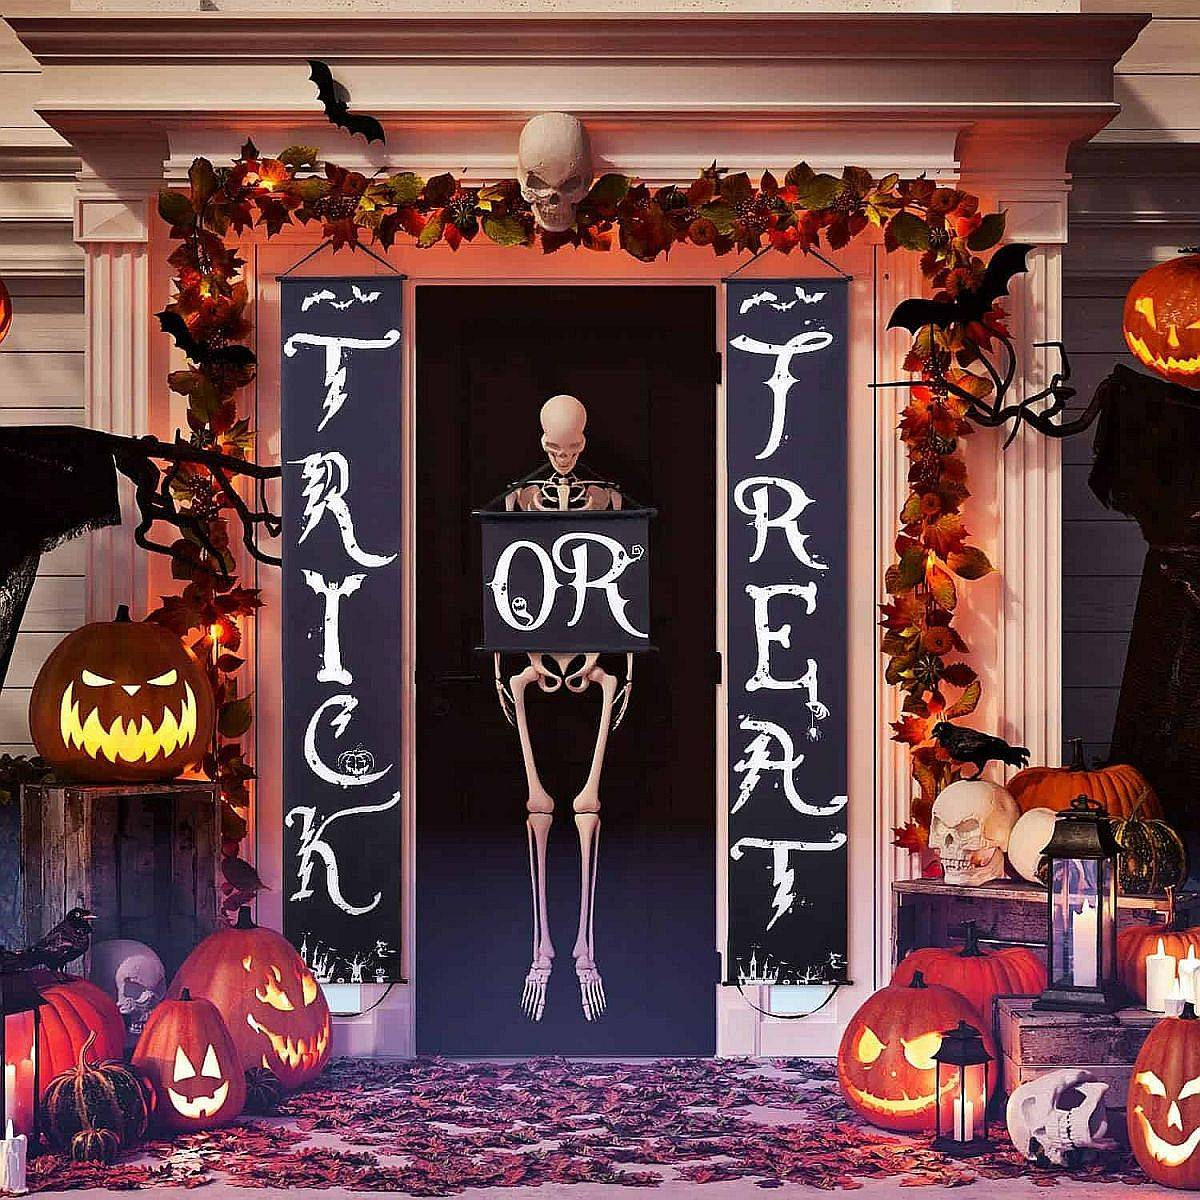 Fabulous front yard and entrance Halloween decorating idea that is an absolute stunner